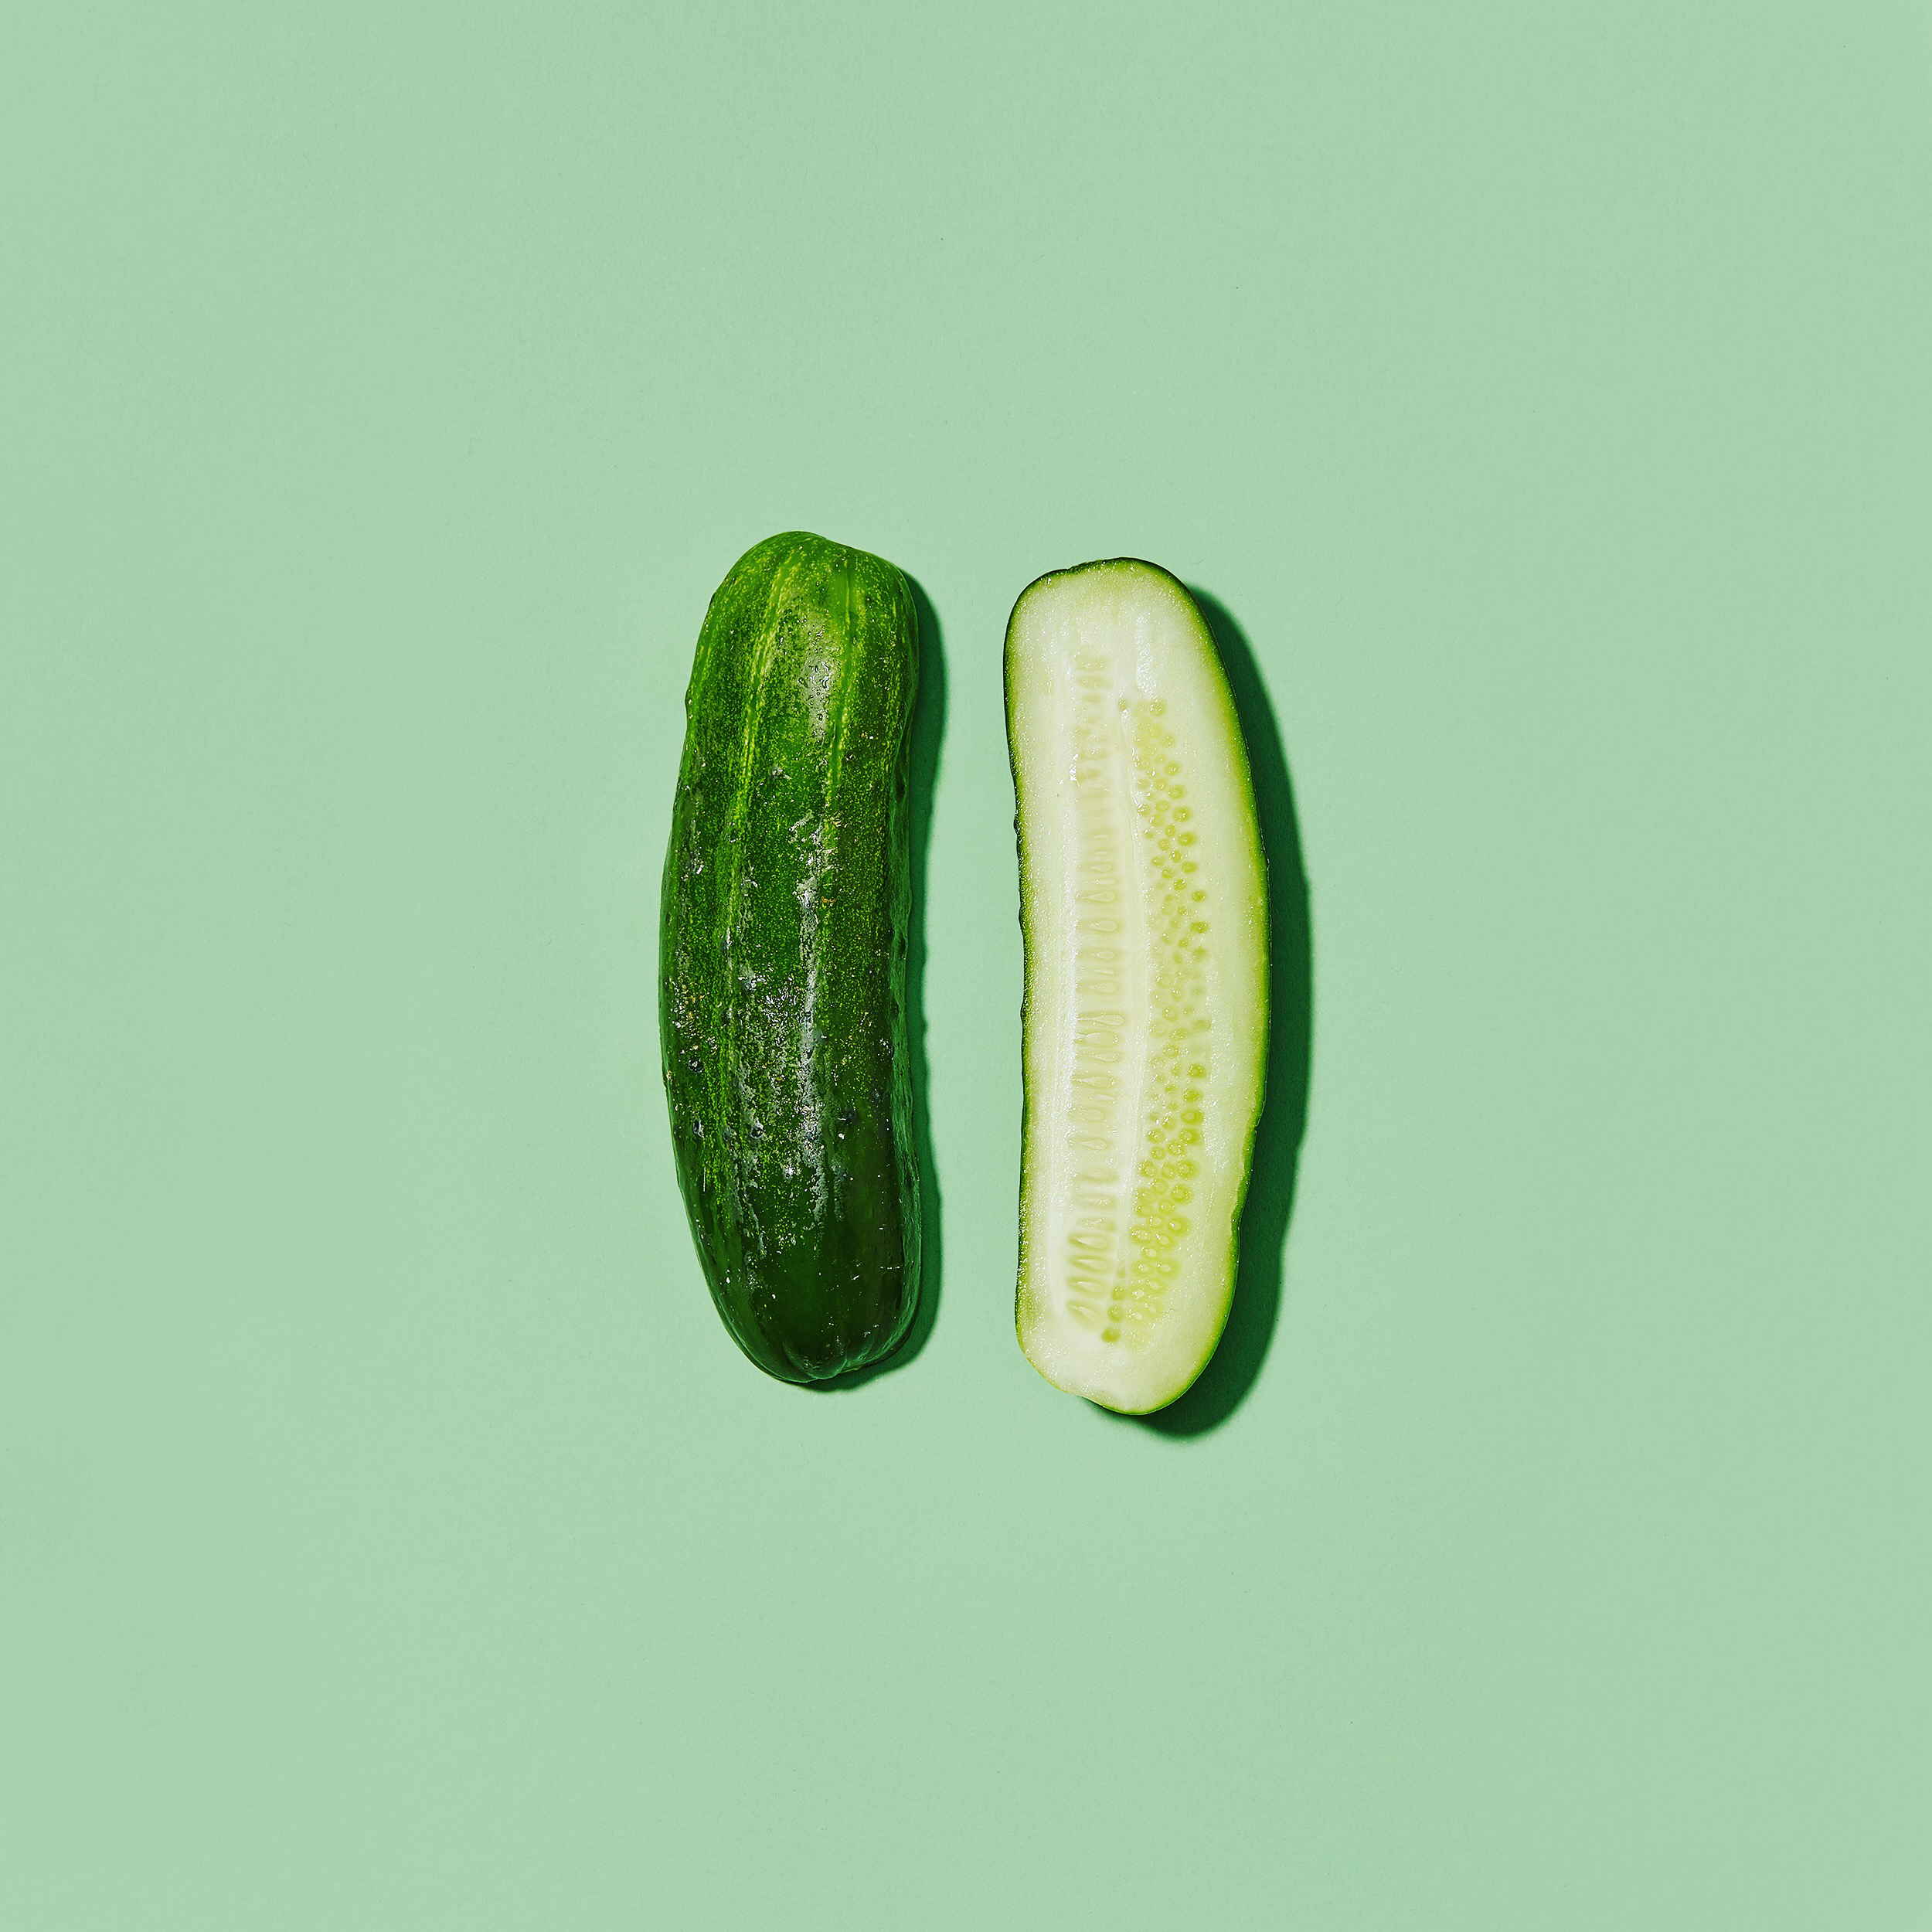 pickles-blog-cucumber-on-green.JPG